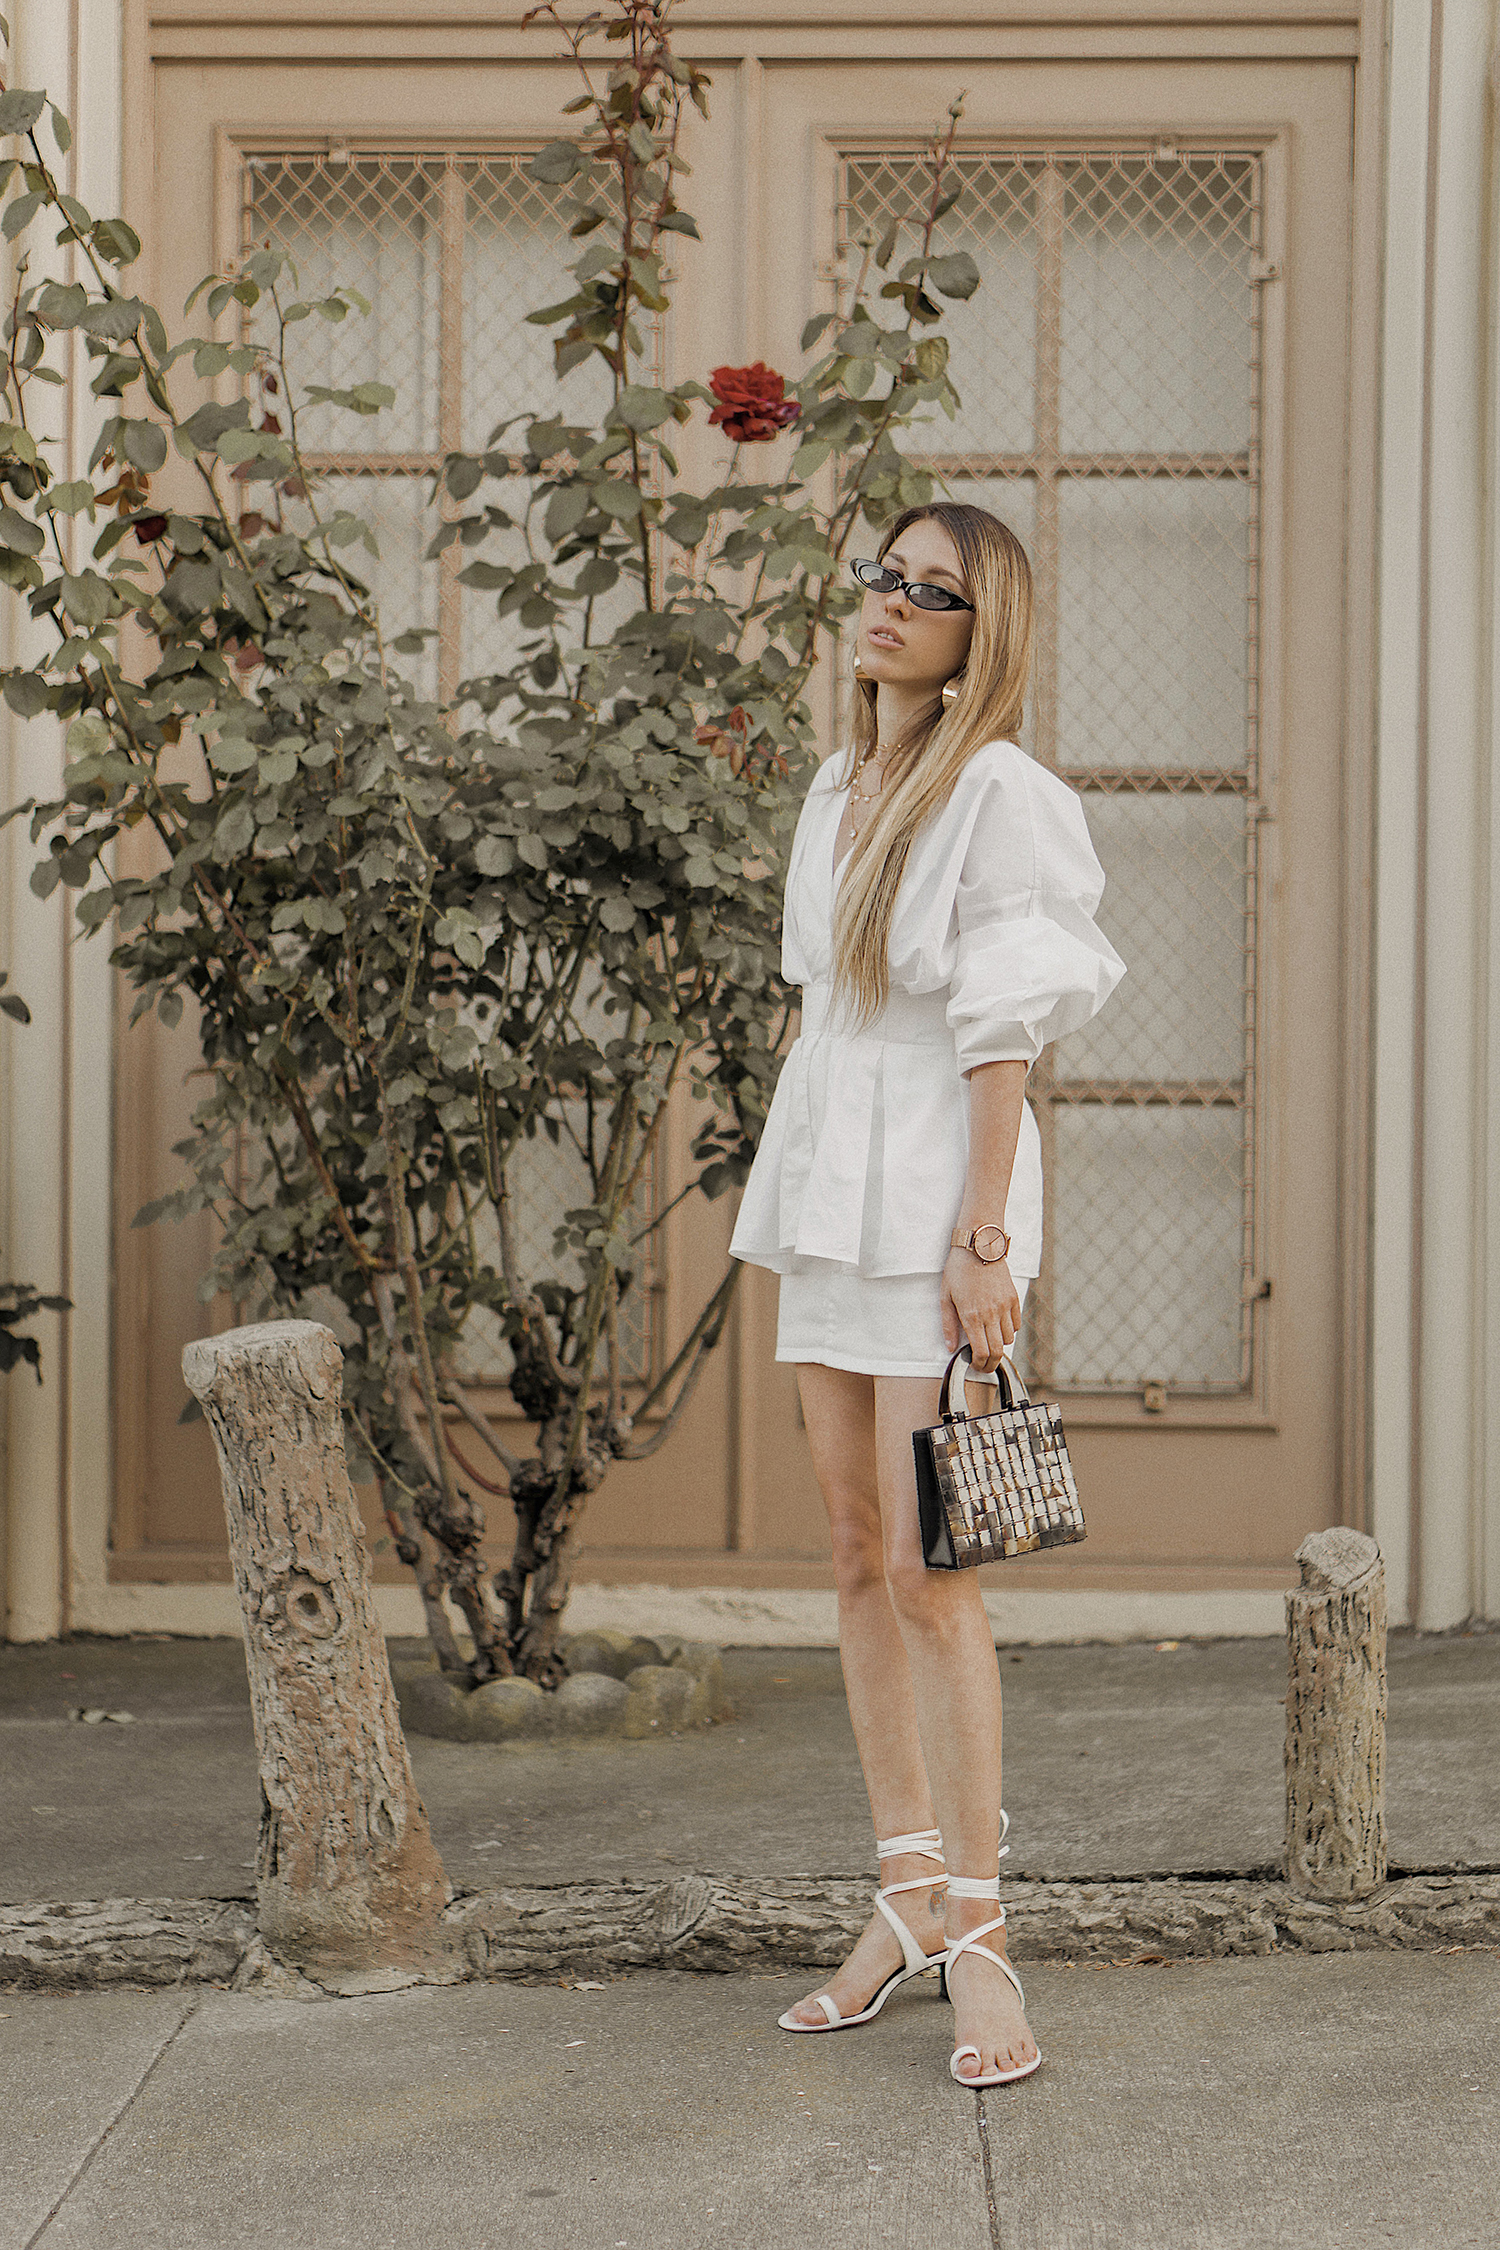 white_outfit_look_ideas_street_style_total_white_Céline_inspired_Ring_Toe_Lace_Up_Sandals_summer_san_francisco_fashion_blogger_bay_area_the_white_ocean_lena_juice_10